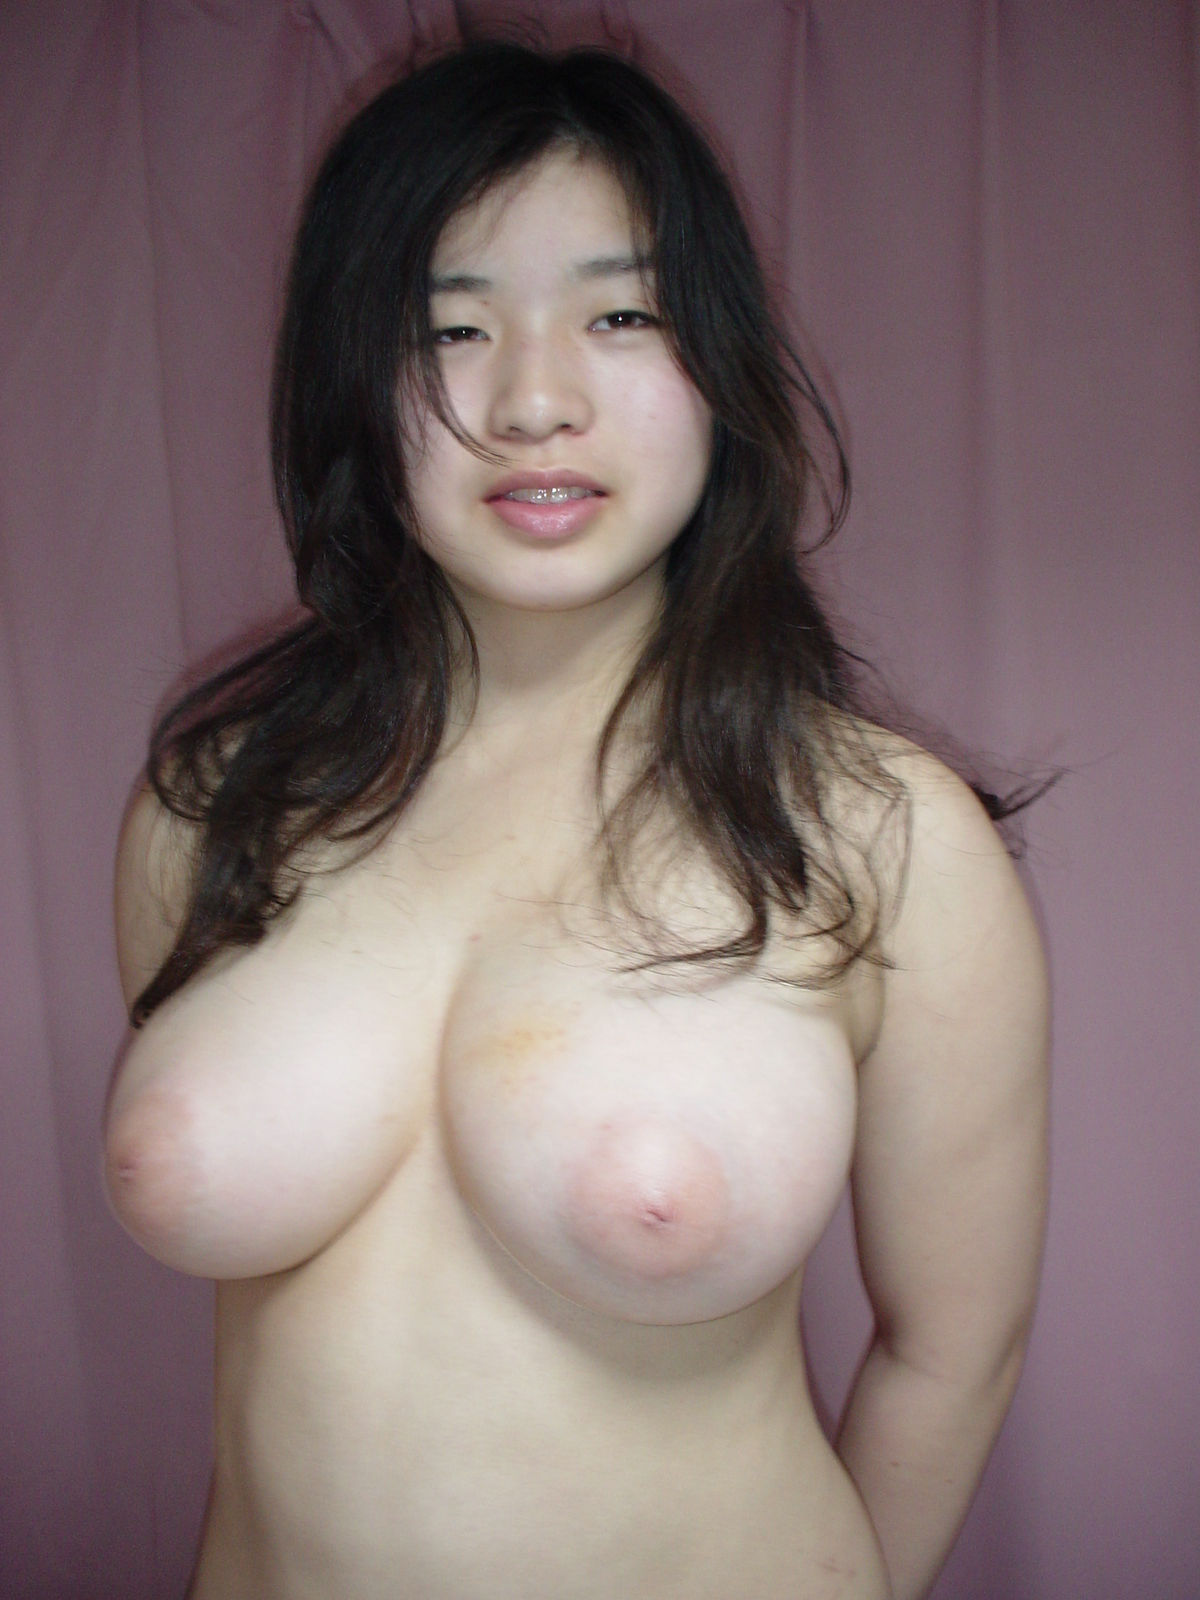 Sodomie bbw asian girl nude need